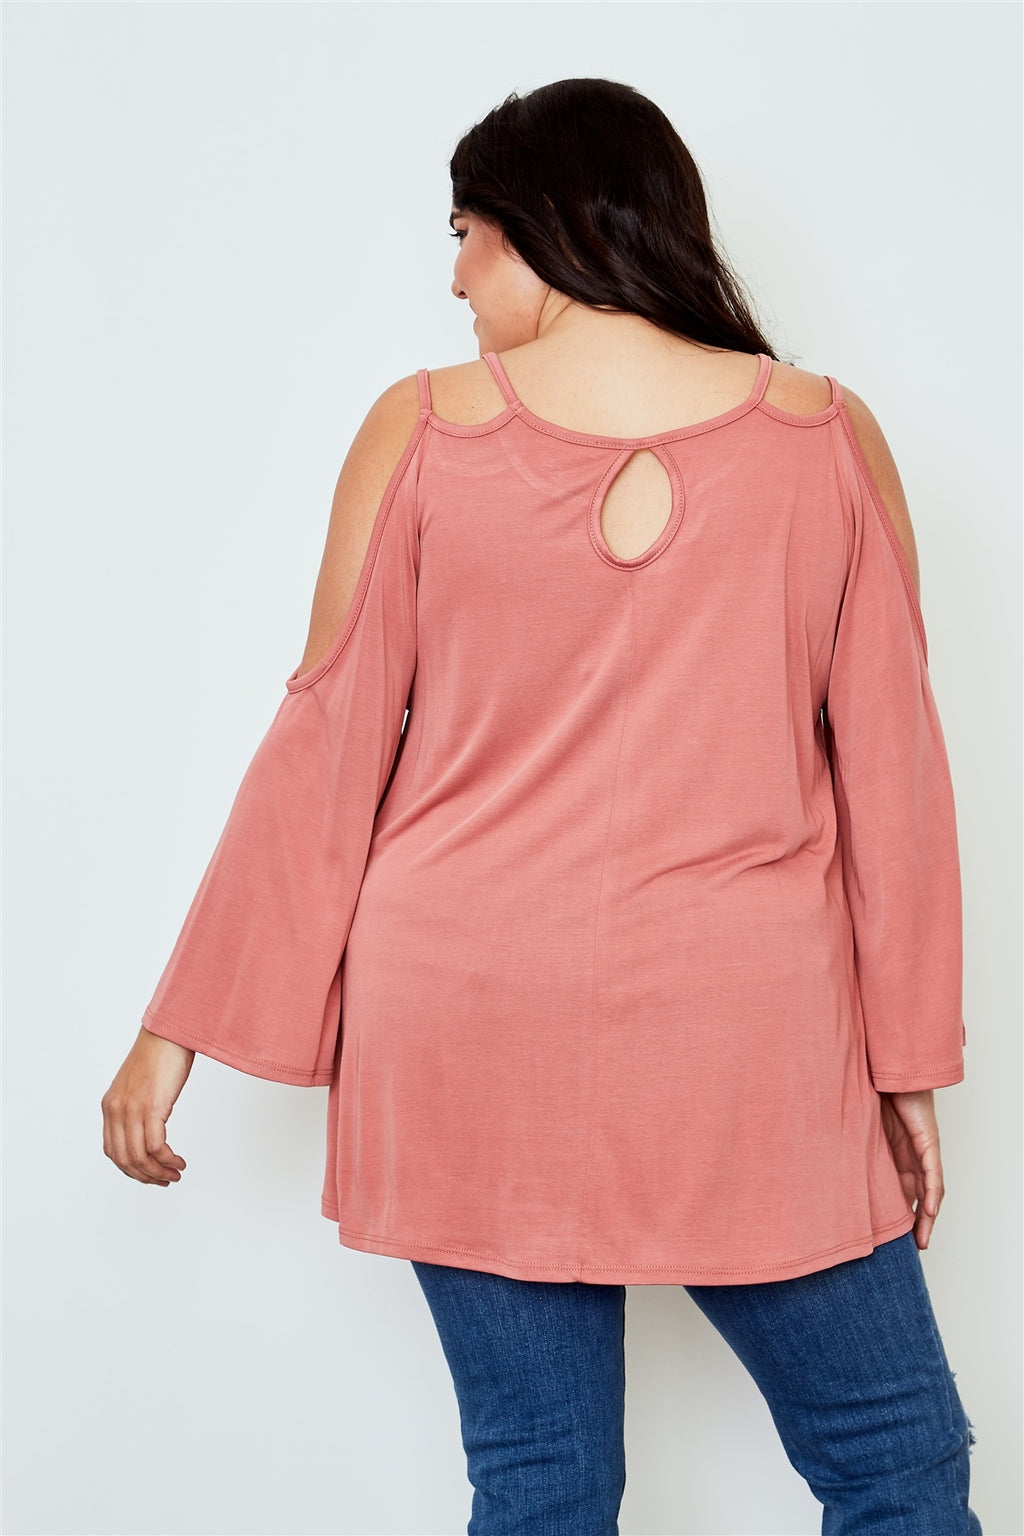 Ladies fashion plus size cold shoulder back keyhole top